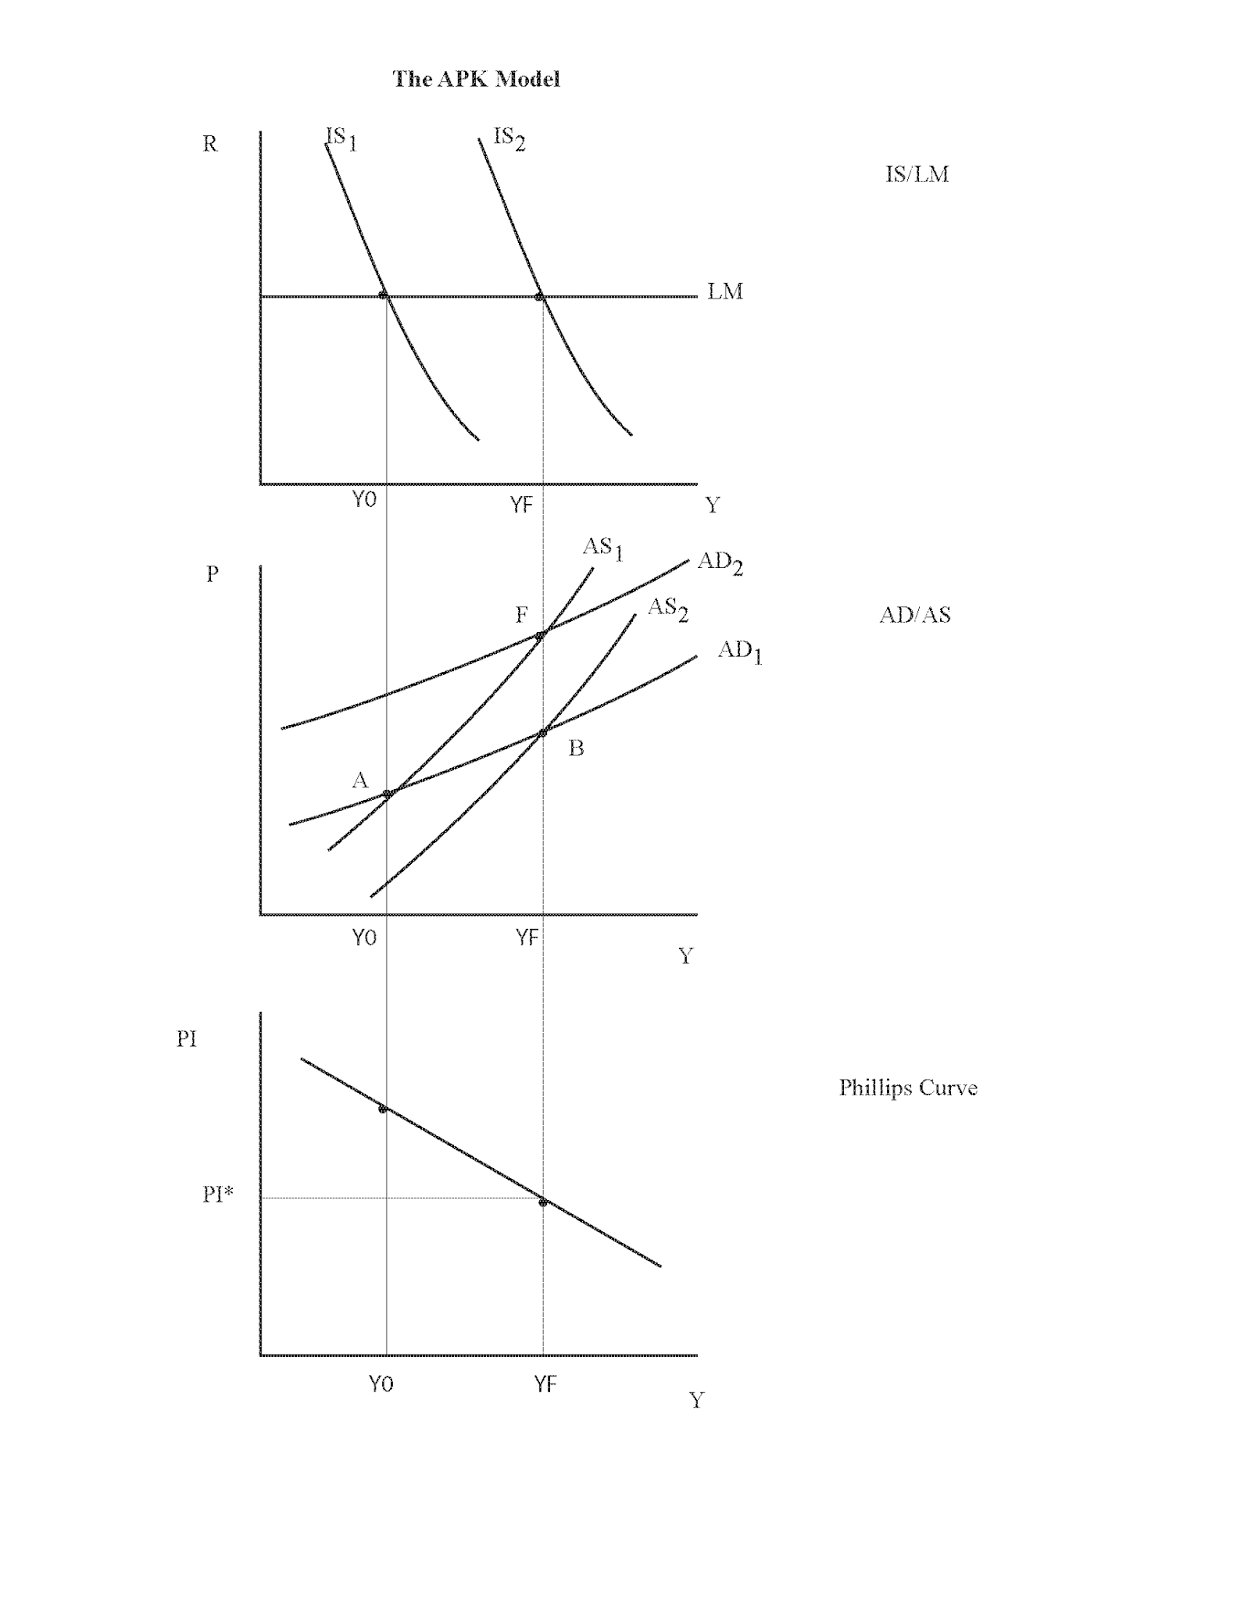 small resolution of in the is lm part of the diagram we have the liquidity trap case with a flat lm curve in the ad as portion of the diagram the ad curve is